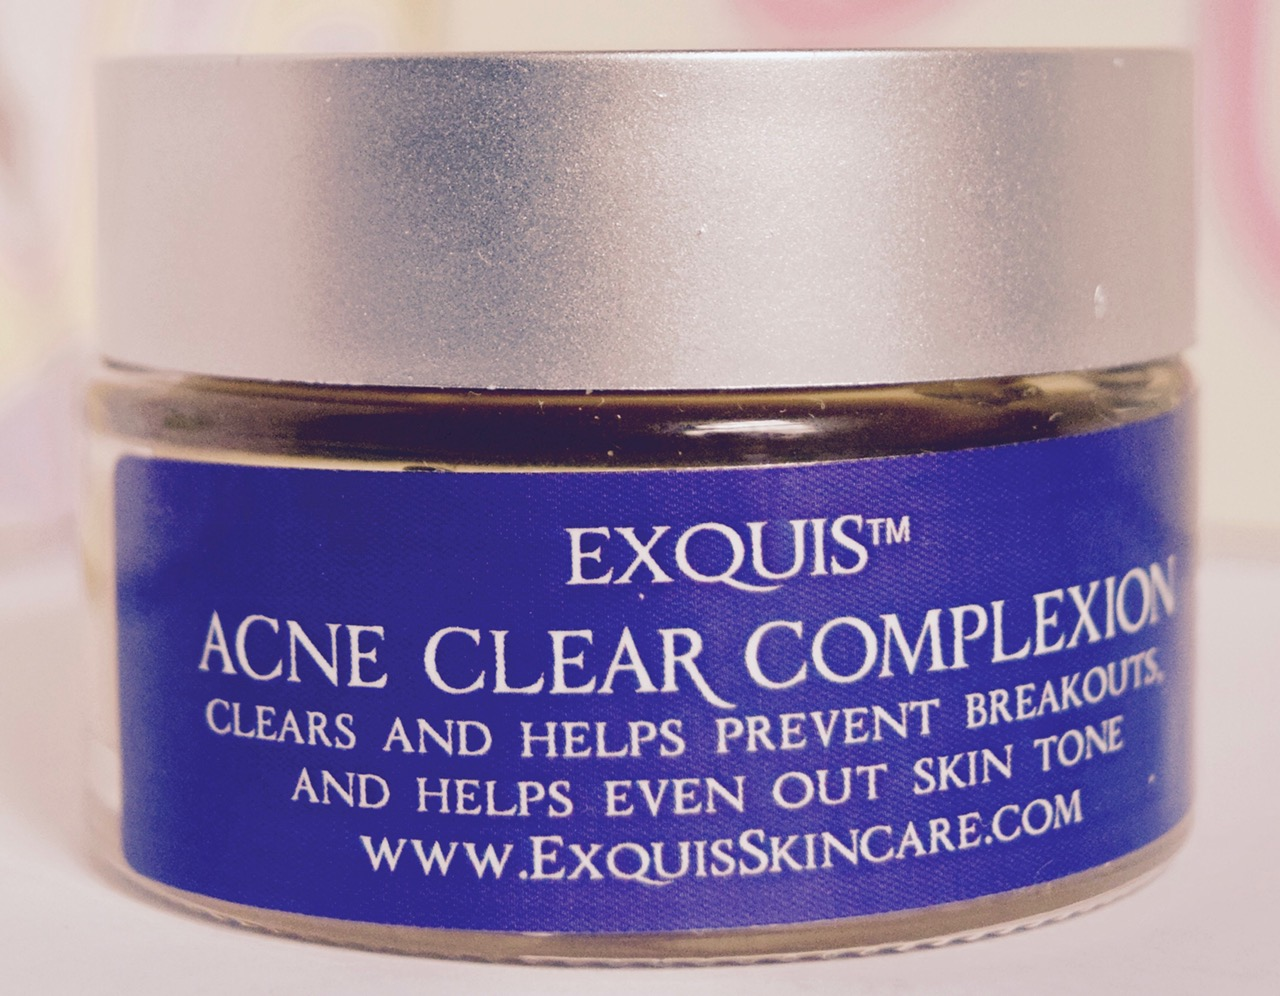 Acne clear complexion.